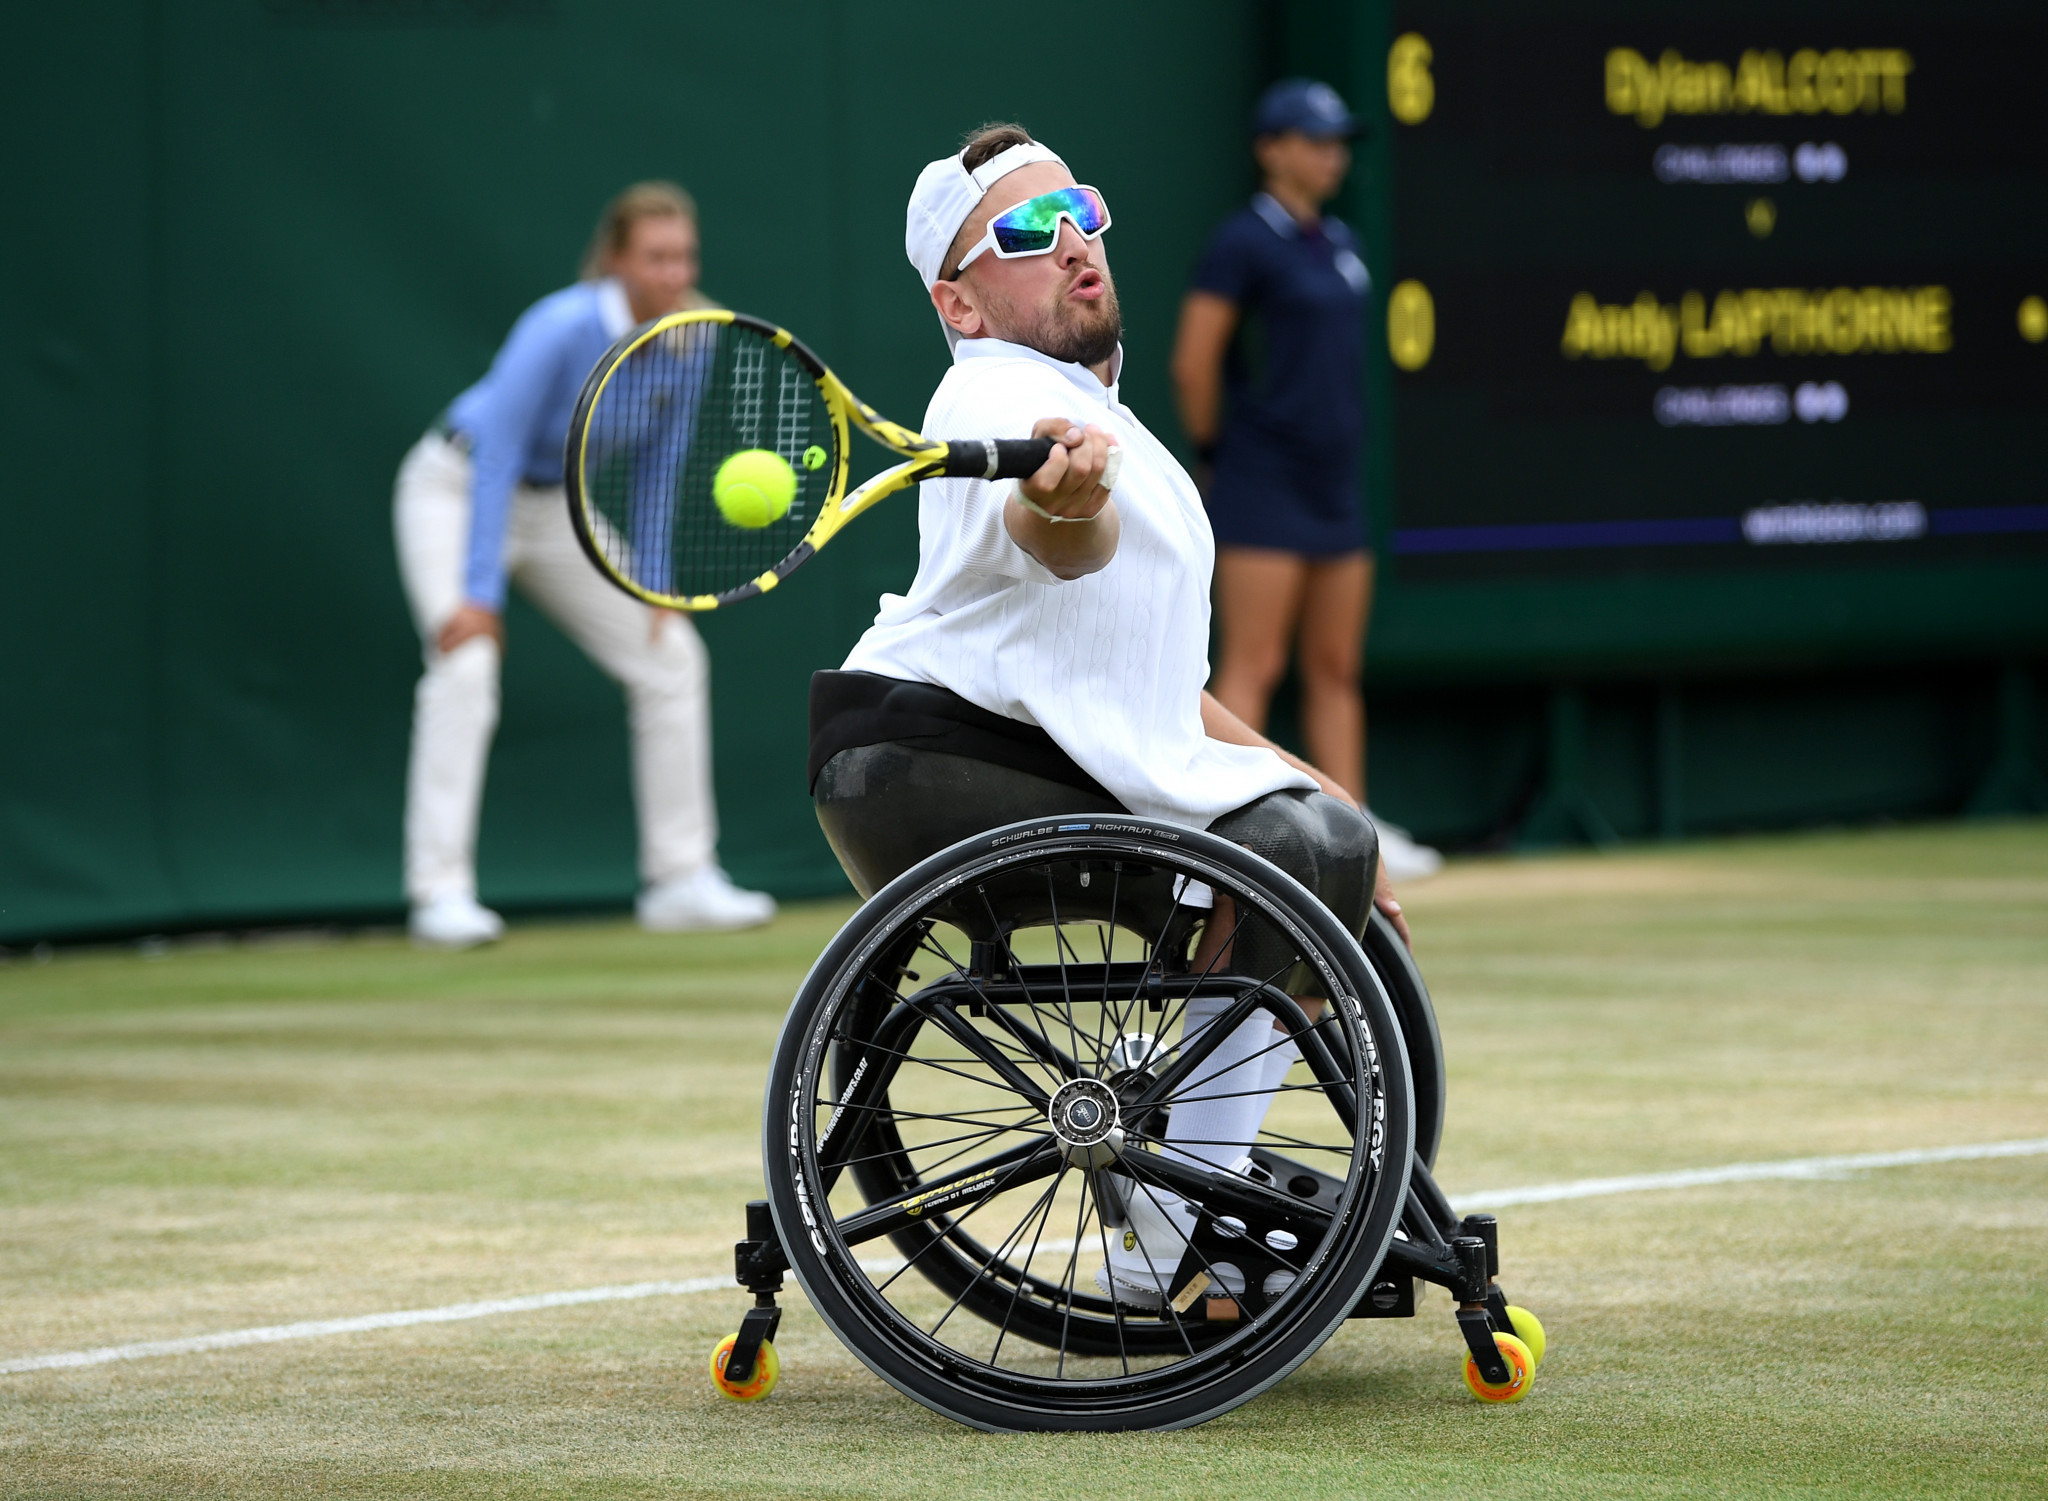 Alcott wins first quad wheelchair singles final at Wimbledon